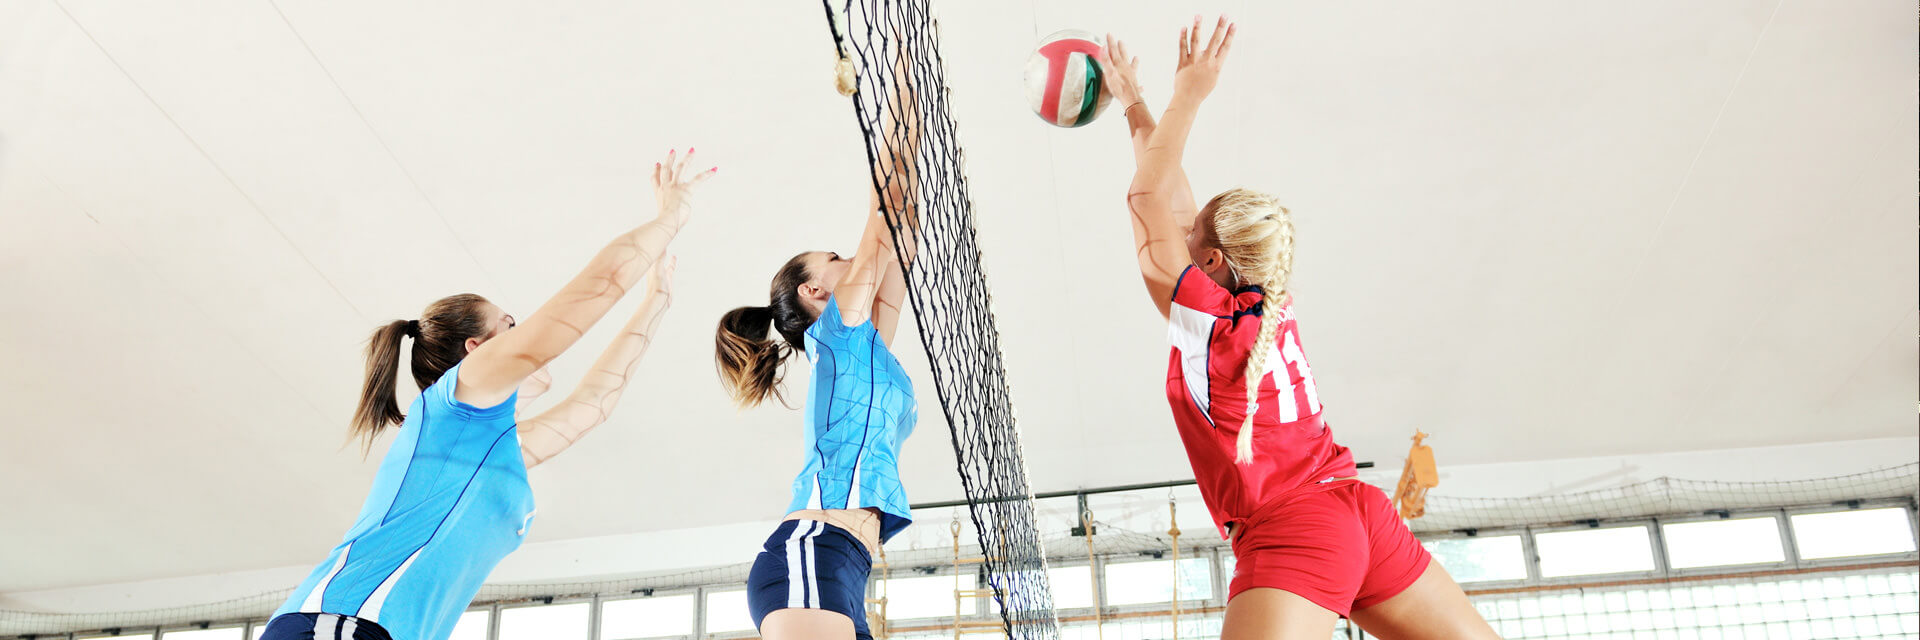 sport_volley